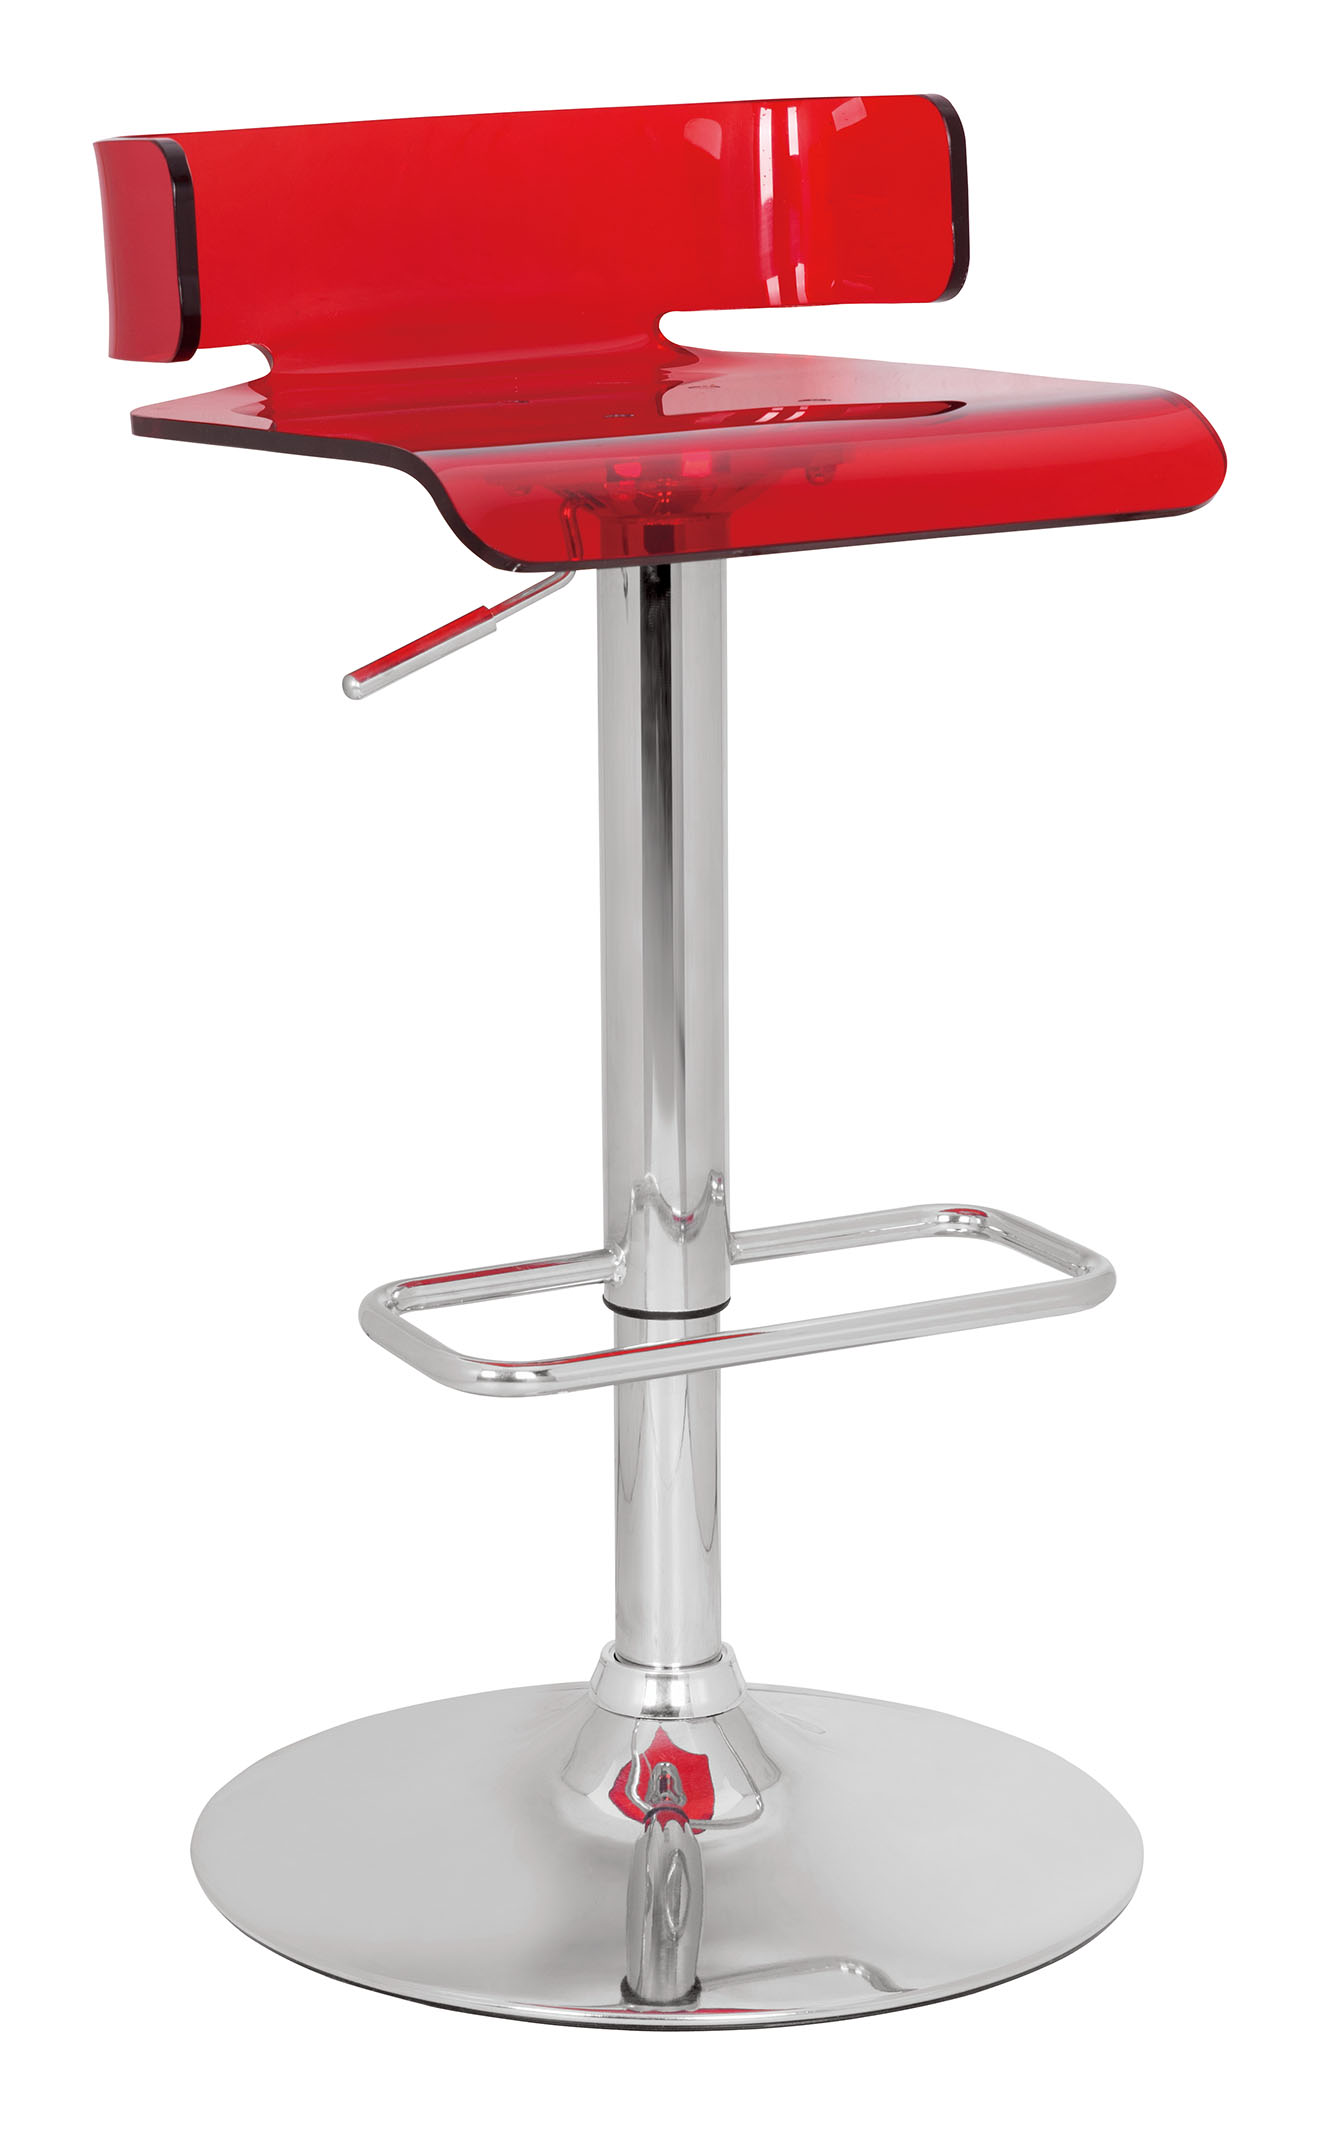 Adjustable Stool With Swivel, Red & Chrome - Abs (Acrylic Resin), Meta Red & Chrome